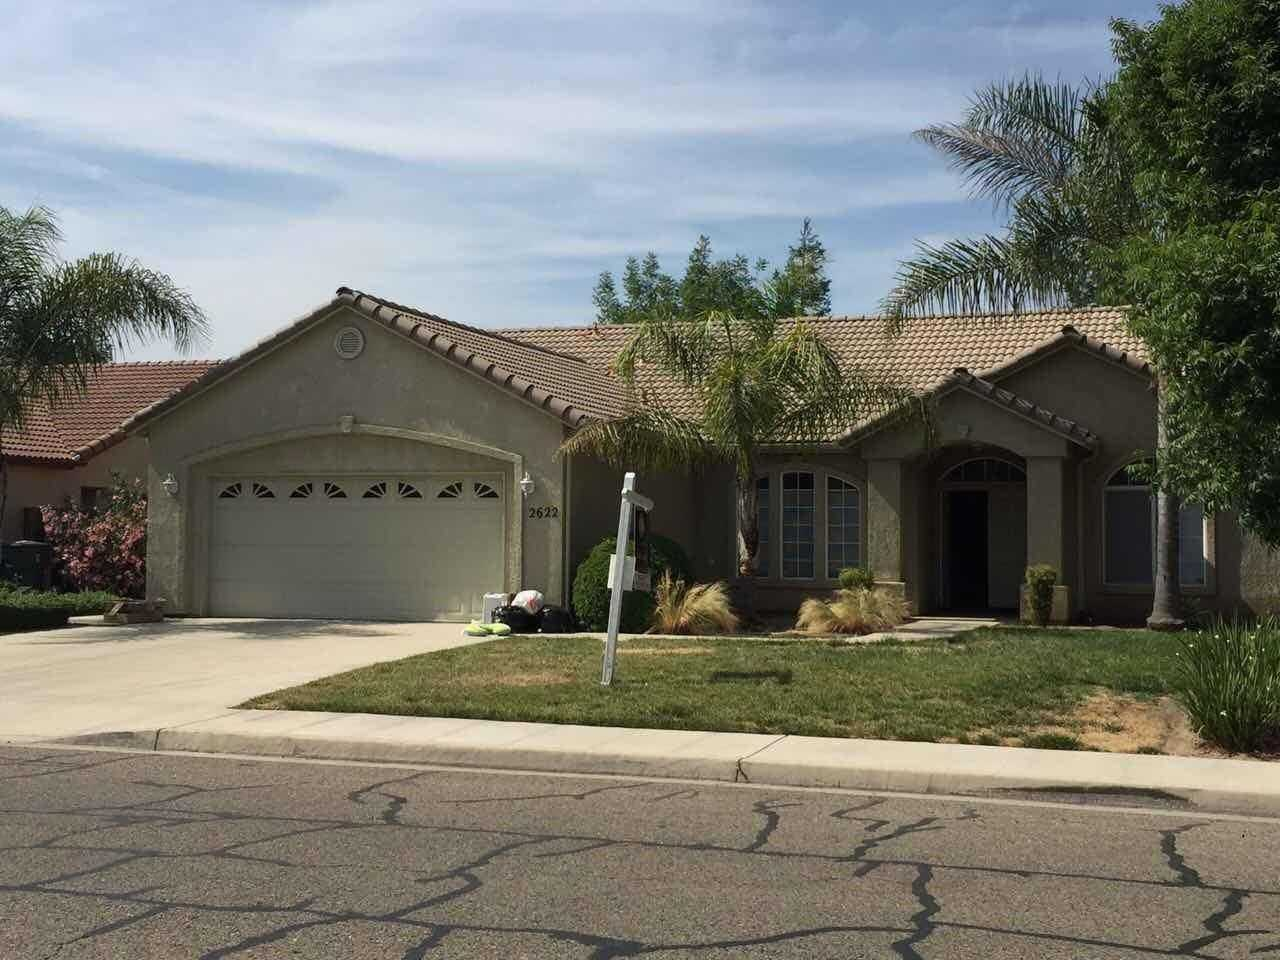 $250,000 - 3Br/2Ba -  for Sale in Visalia